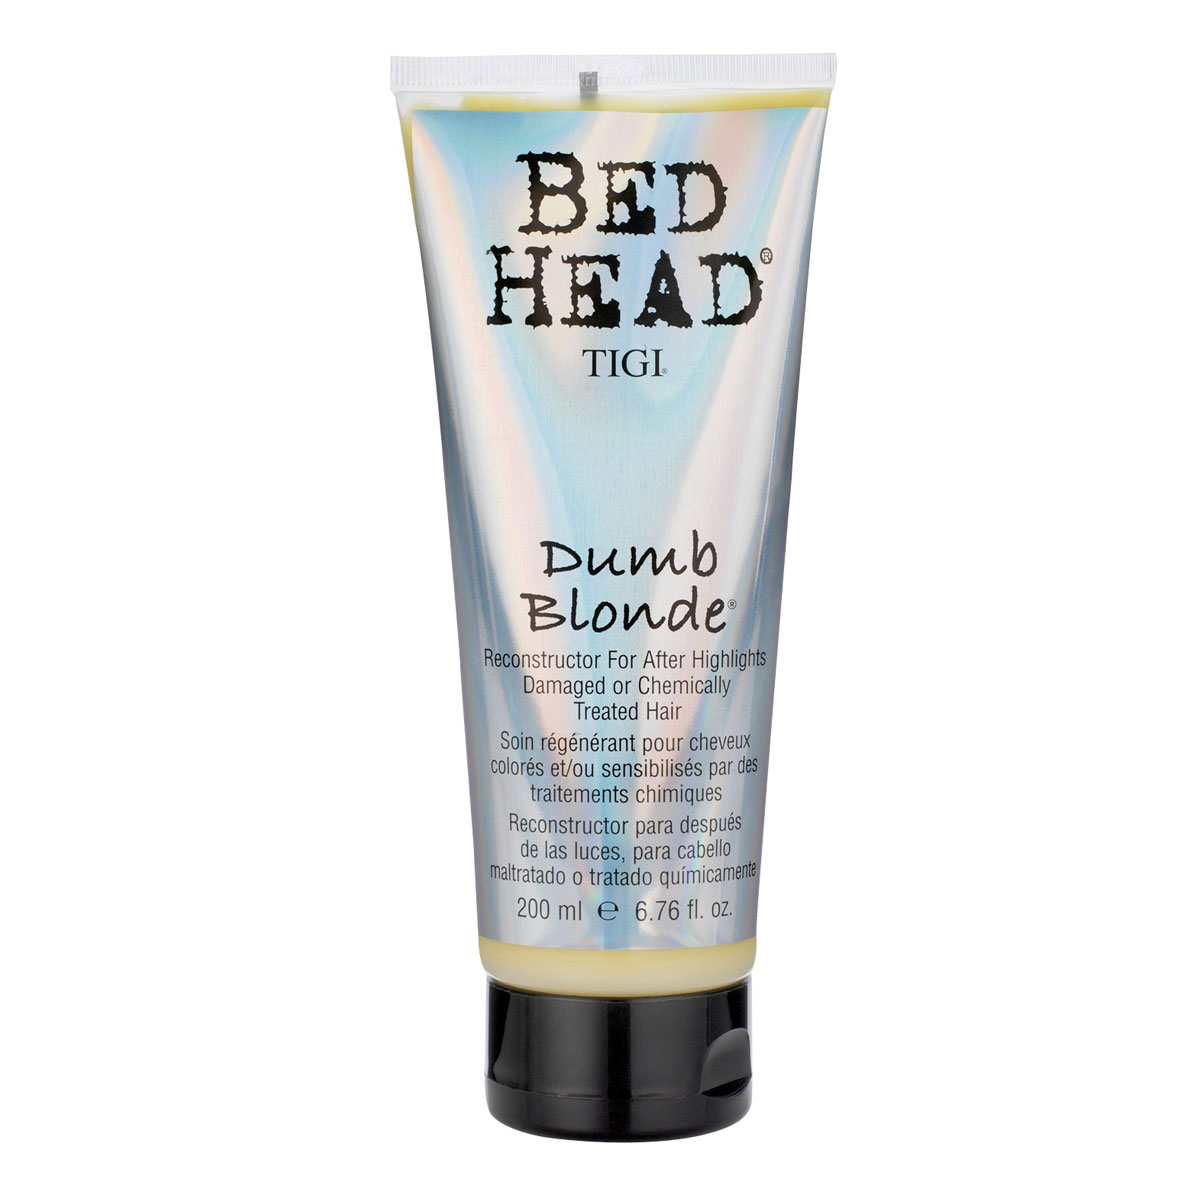 Tigi Bed Head Dumb Blonde Reconstructor Hair Serum 200ml Enlarged Preview